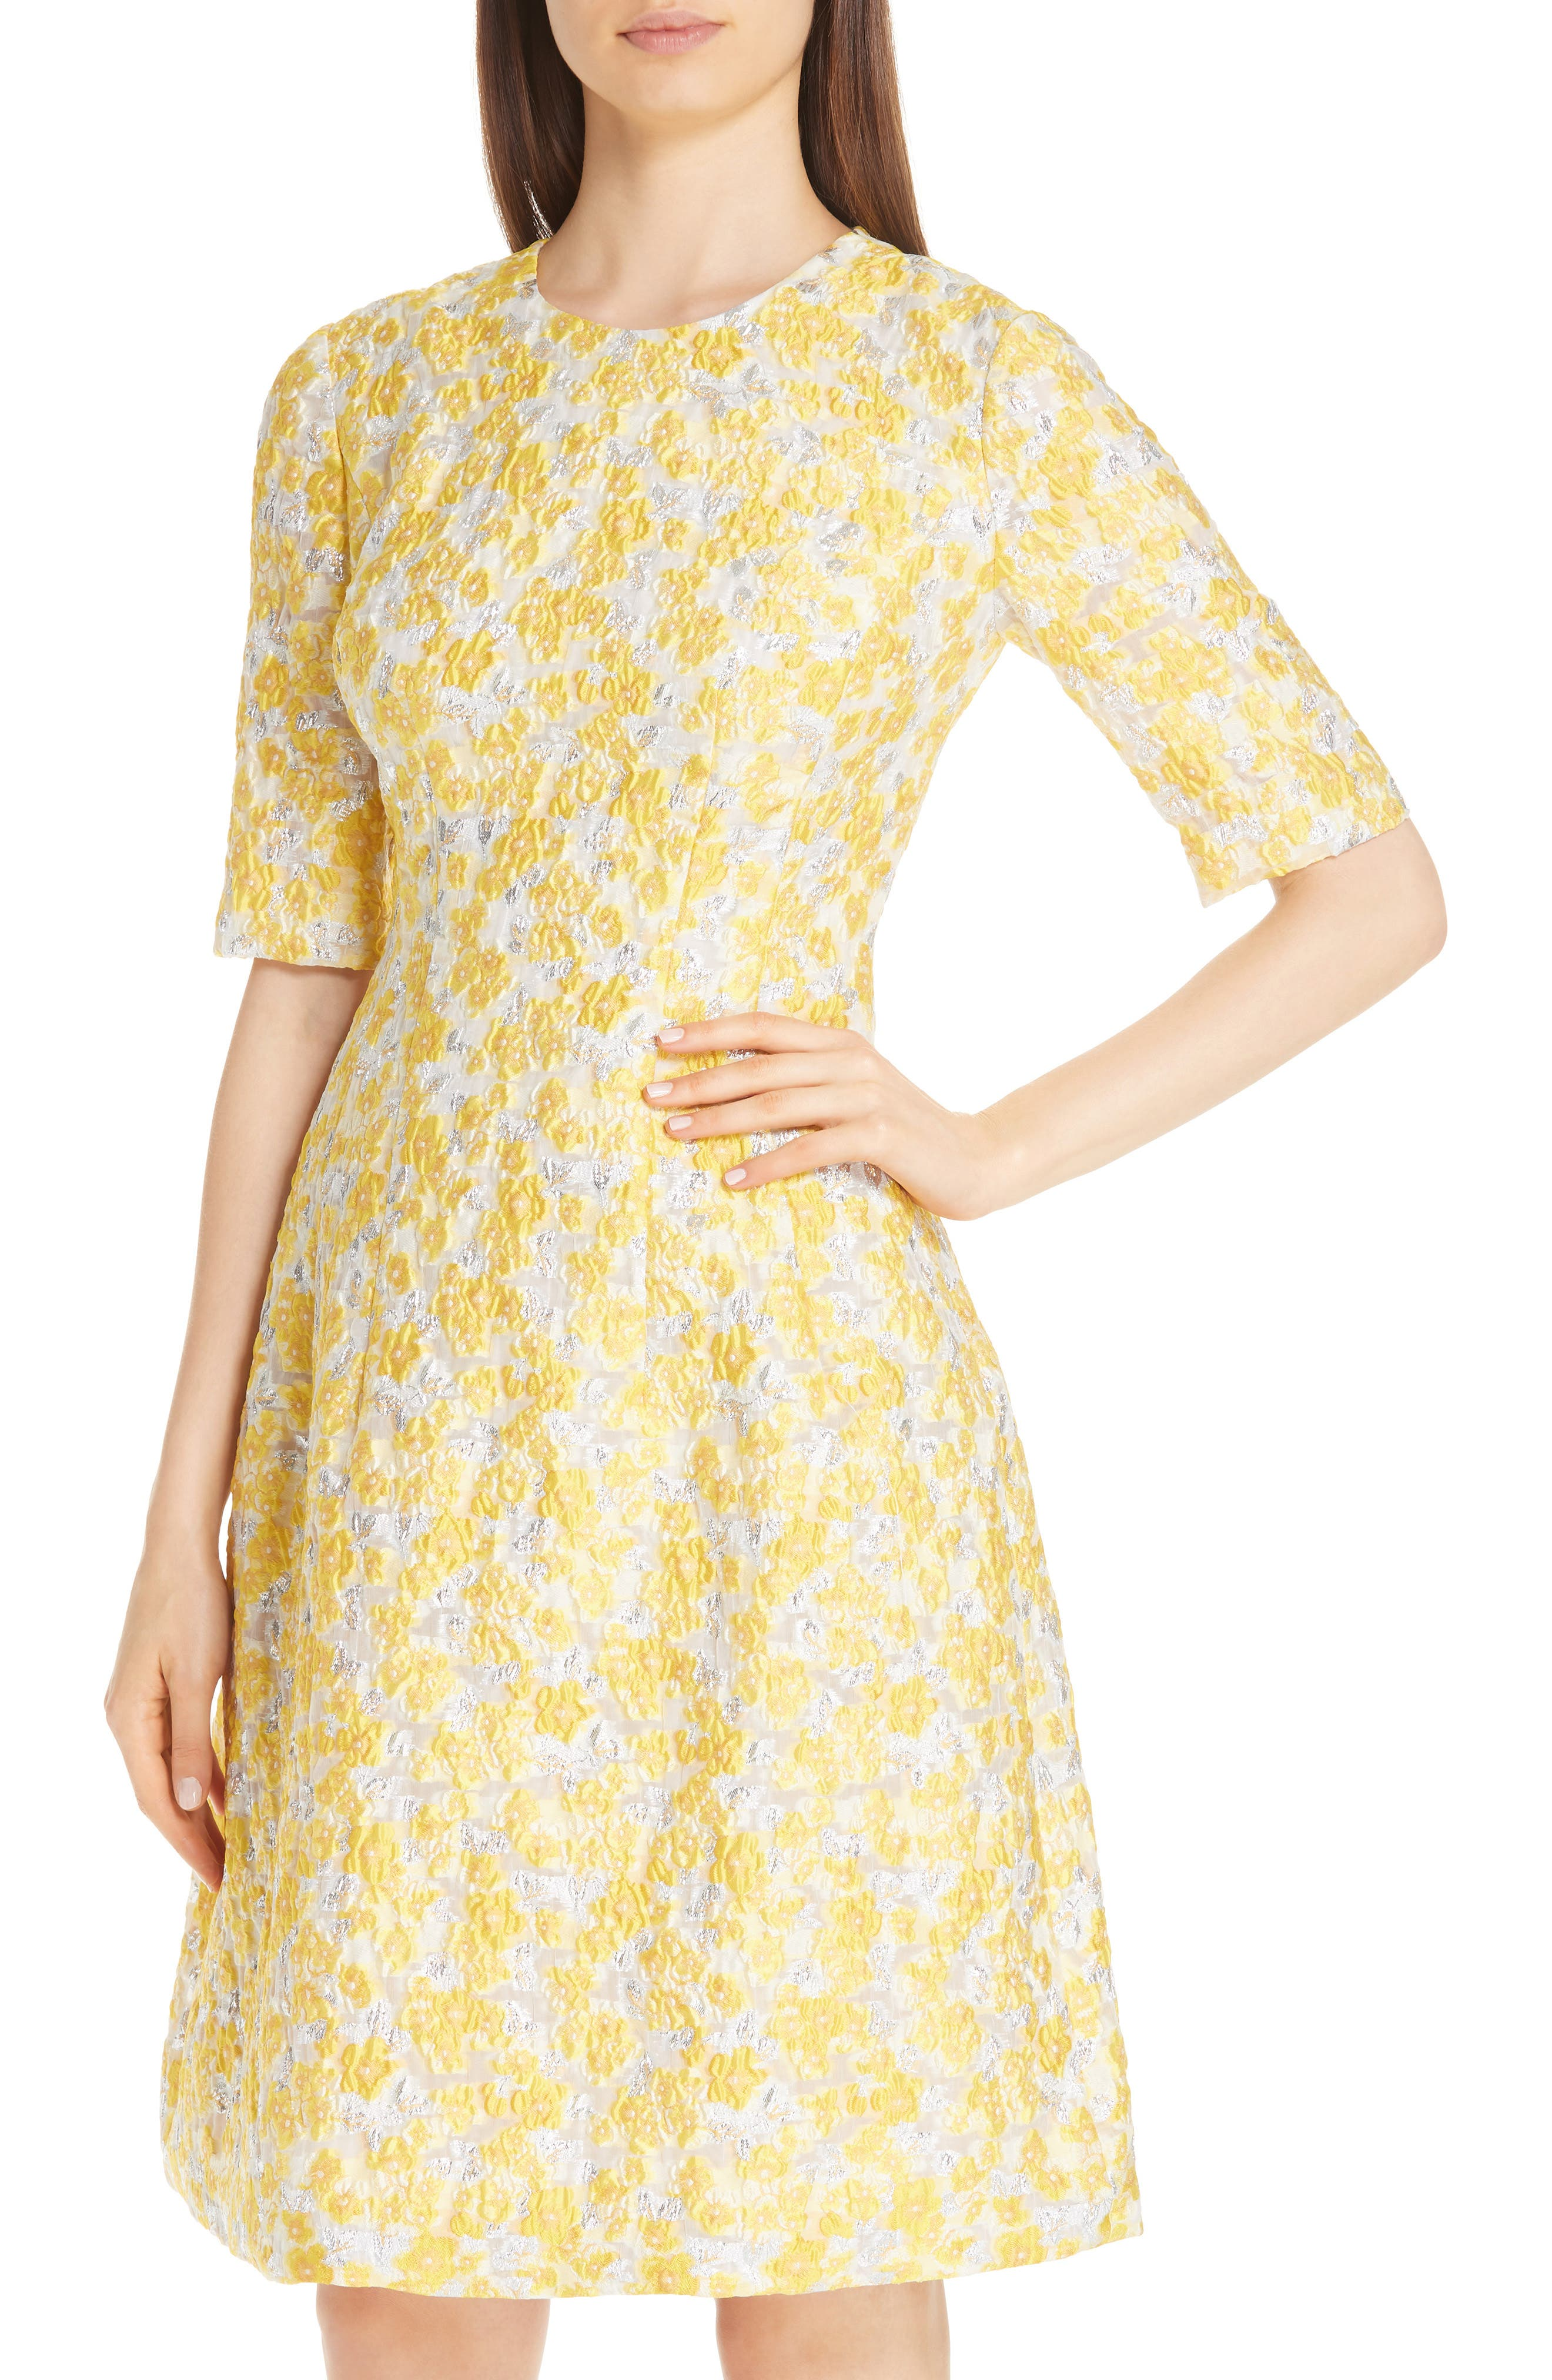 Holly Metallic Floral Fil Coupé Fit & Flare Dress,                             Alternate thumbnail 4, color,                             YELLOW